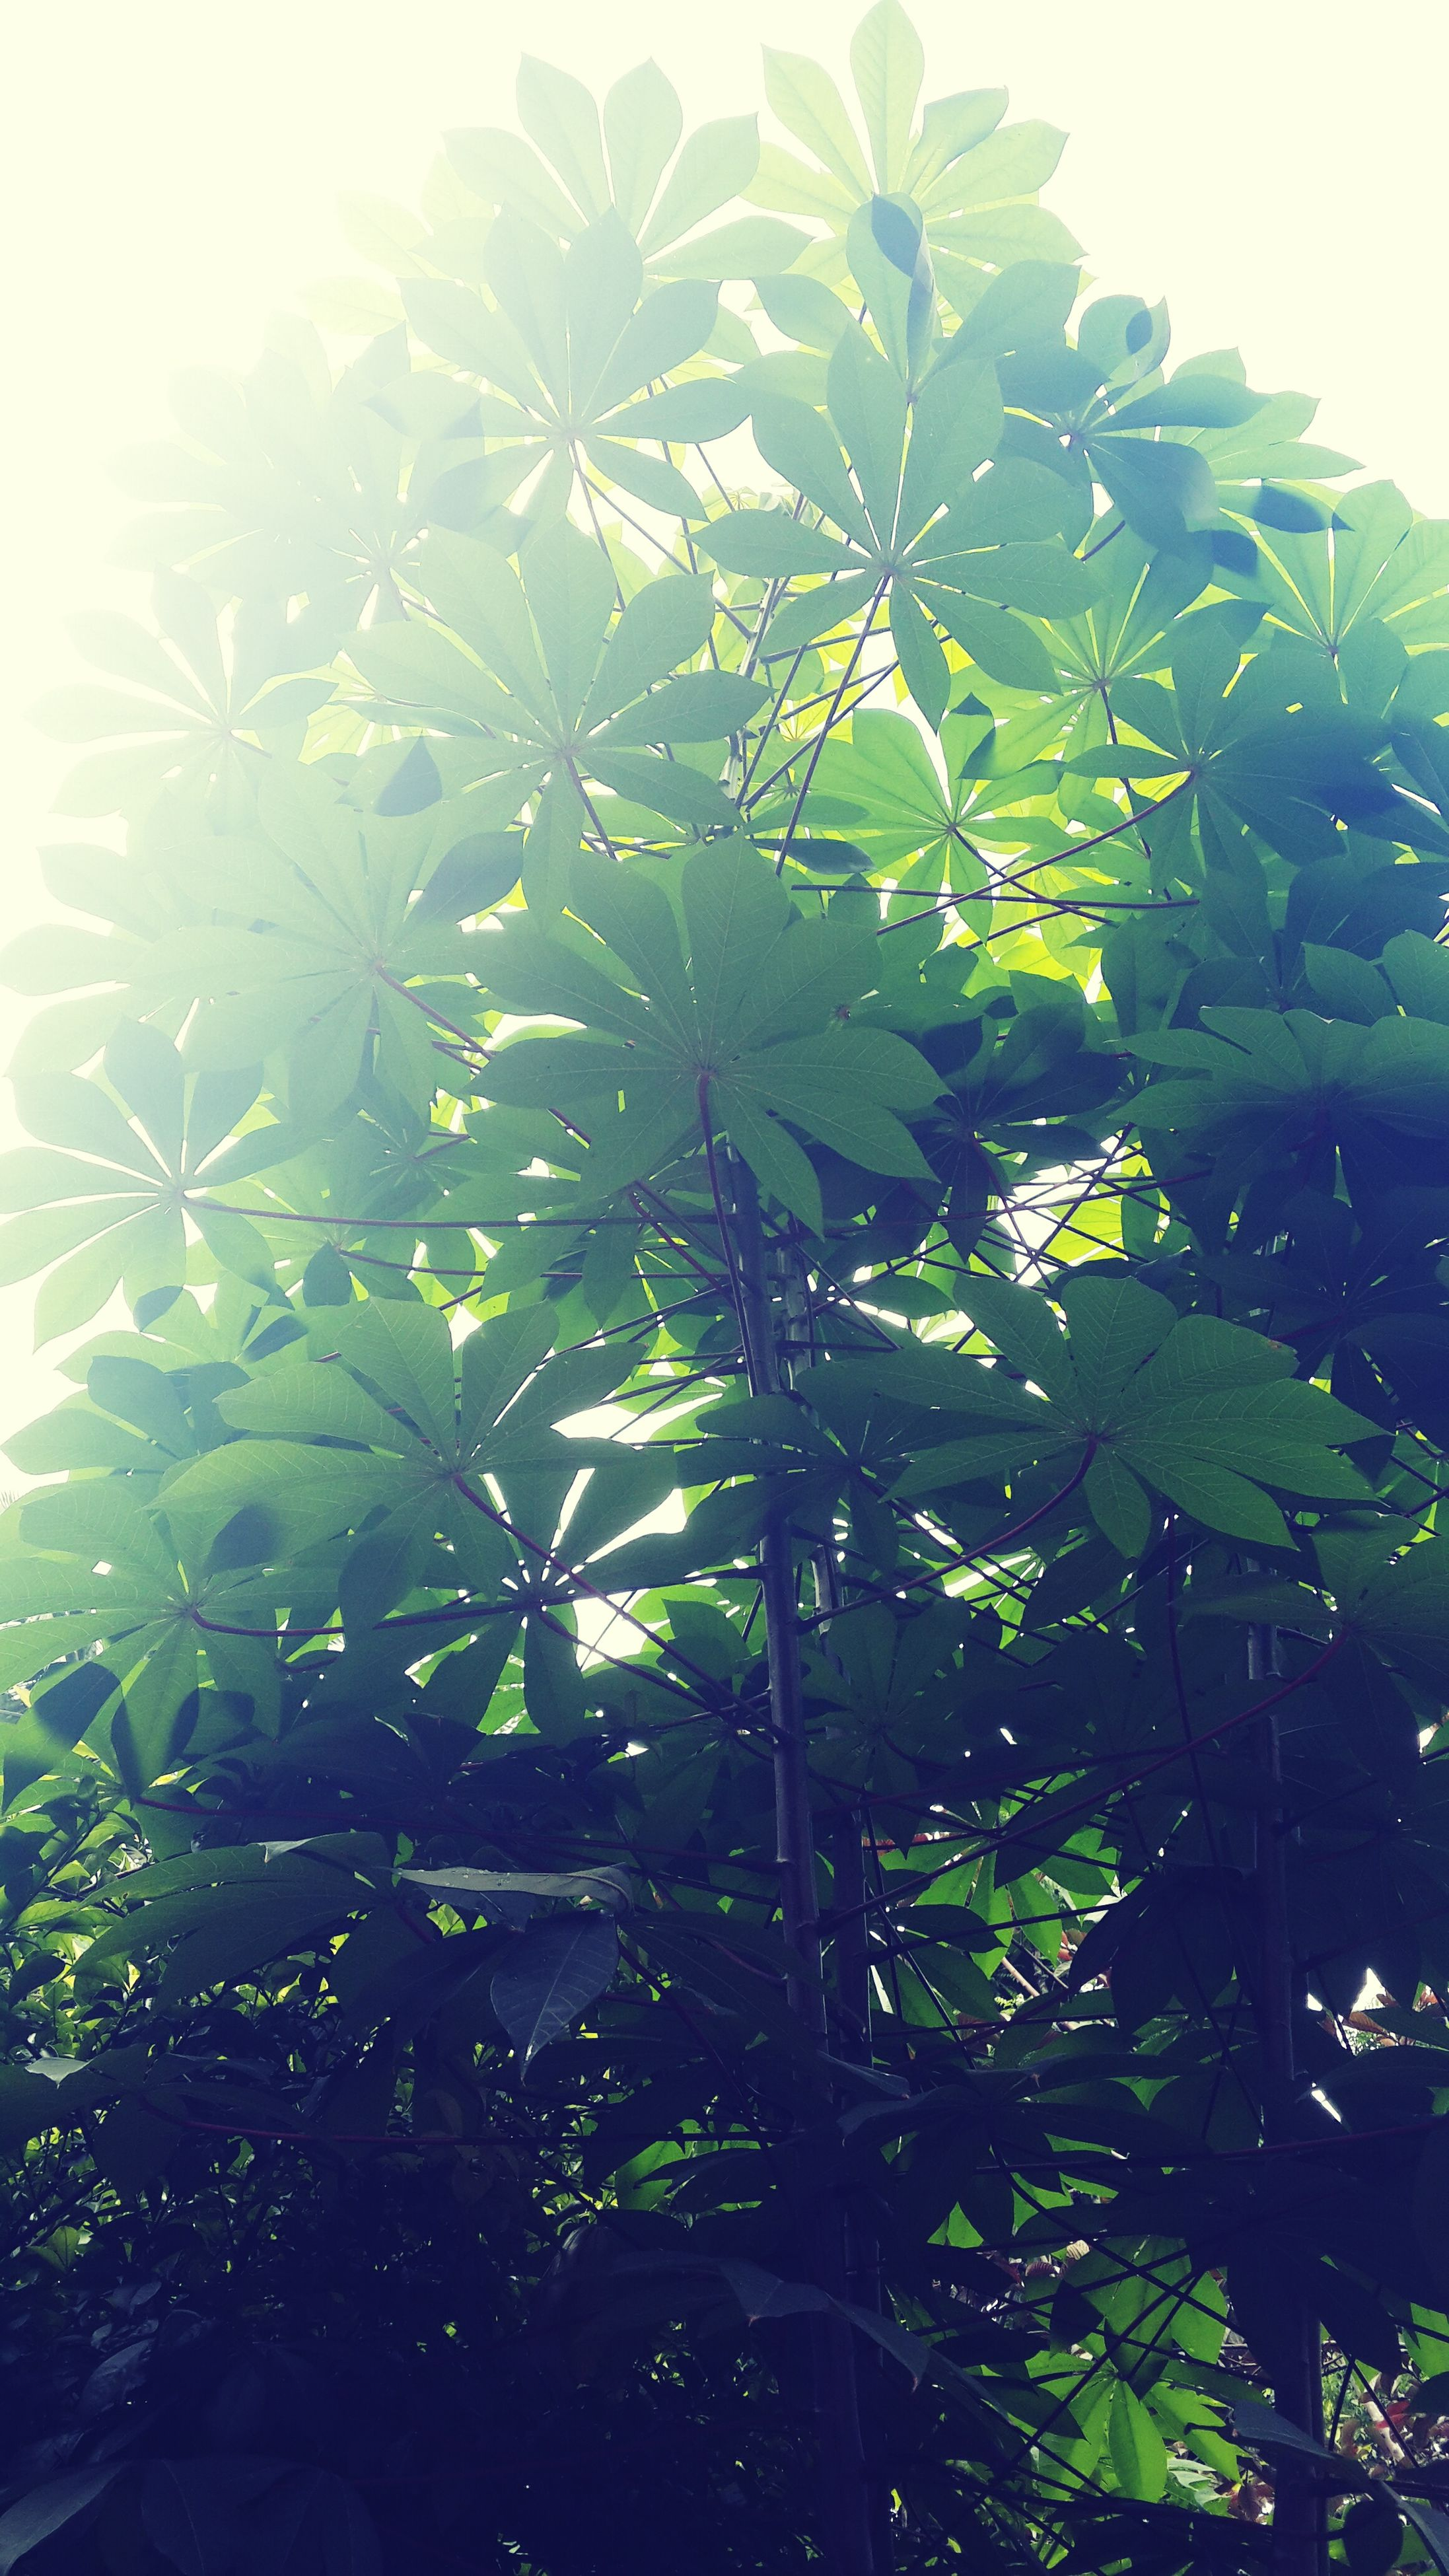 leaf, growth, tree, low angle view, branch, green color, nature, clear sky, beauty in nature, tranquility, plant, sky, sunlight, day, outdoors, close-up, no people, green, growing, freshness